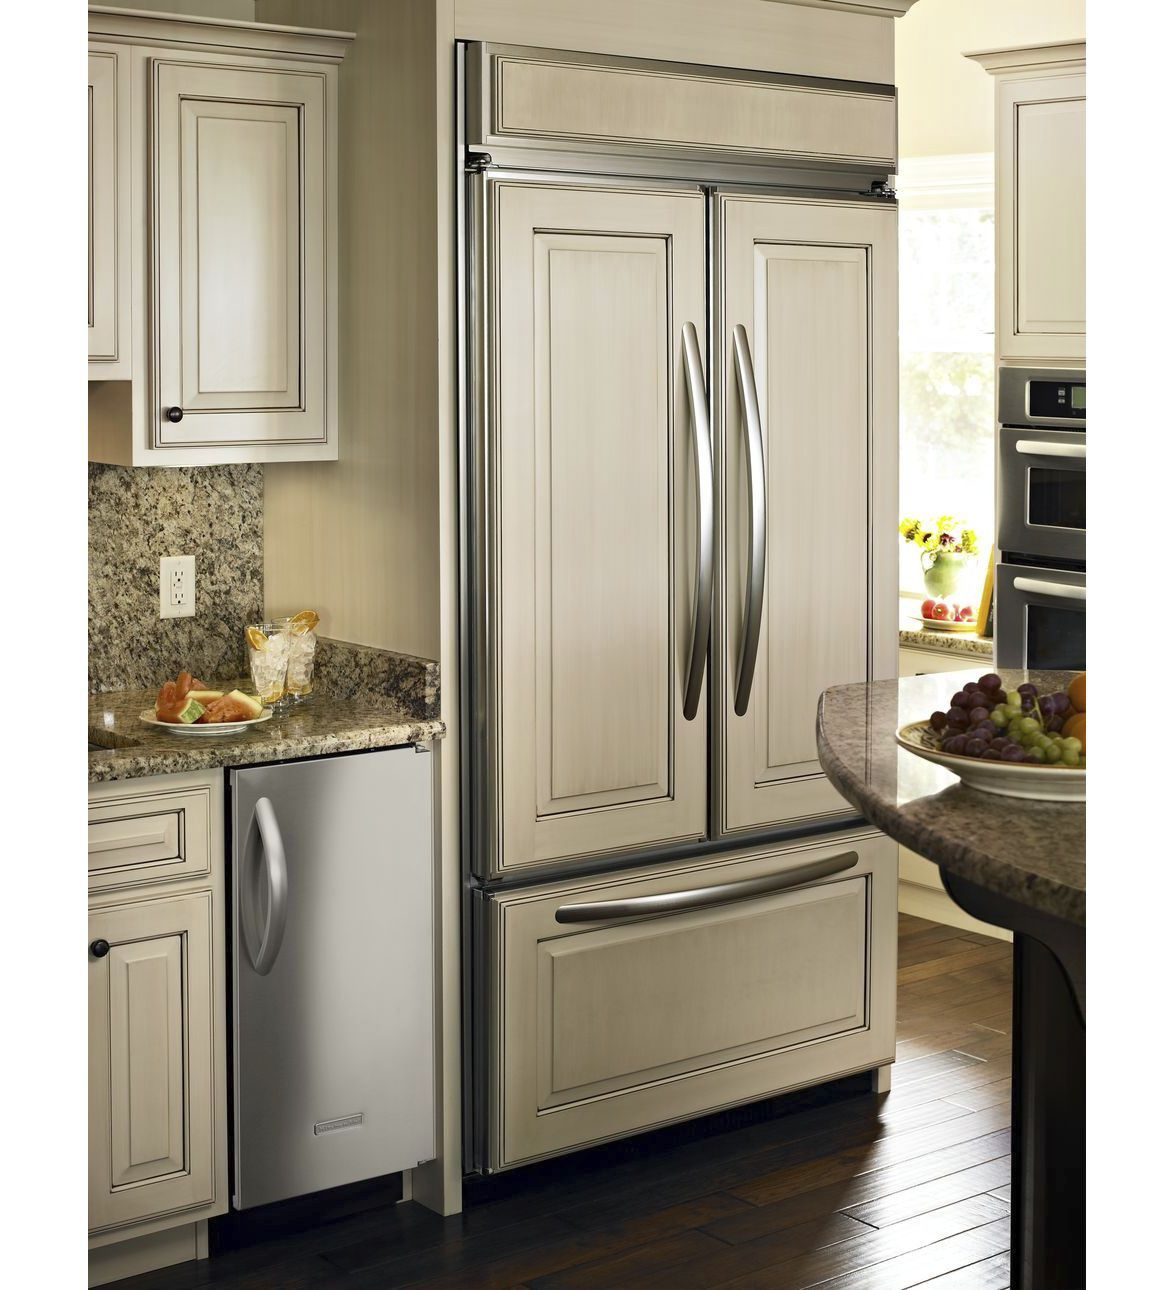 Superieur American Refrigerator / White / Built In ...